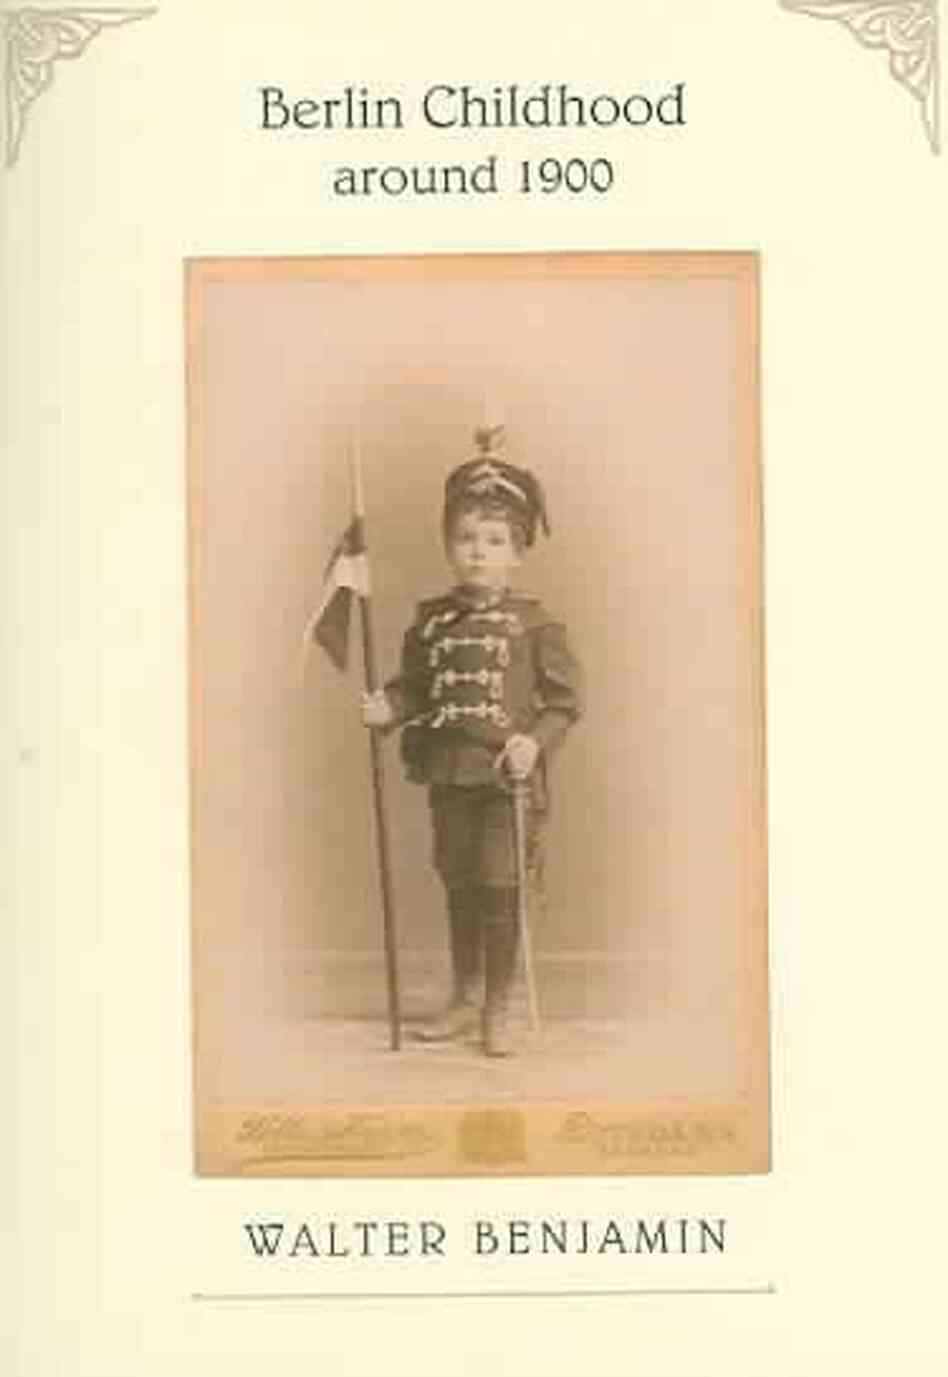 Berlin Childhood Around 1900